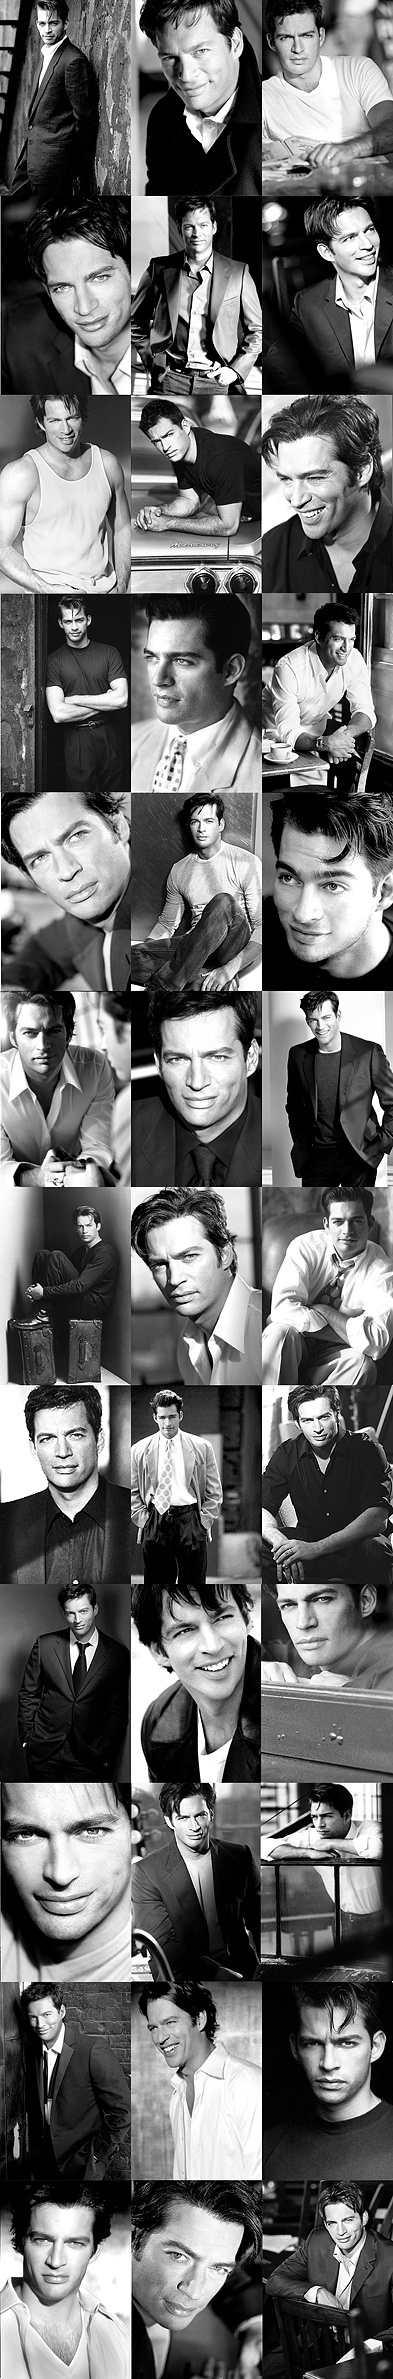 Harry Connick, Jr....because why not have a collage of his sexy self!  After seeing him in concert, you know he is beautiful inside and out!  Love him!